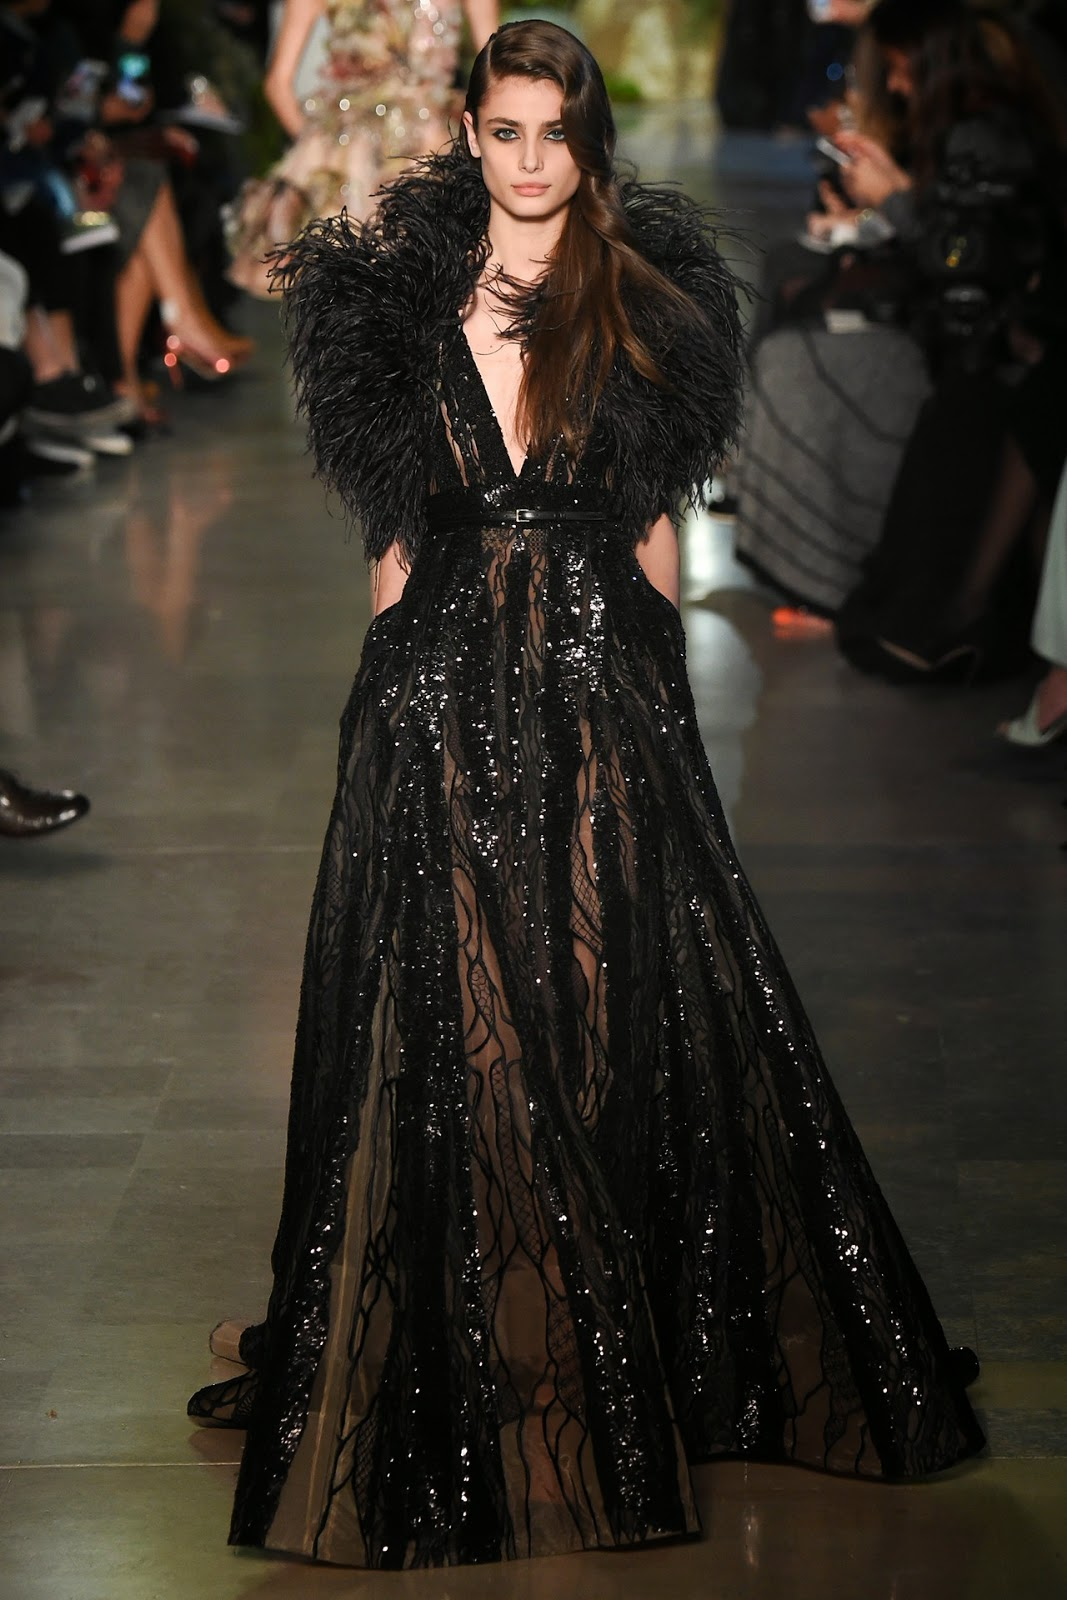 Mode sty designer crush elie saab haute couture 2015 for Haute couture designers